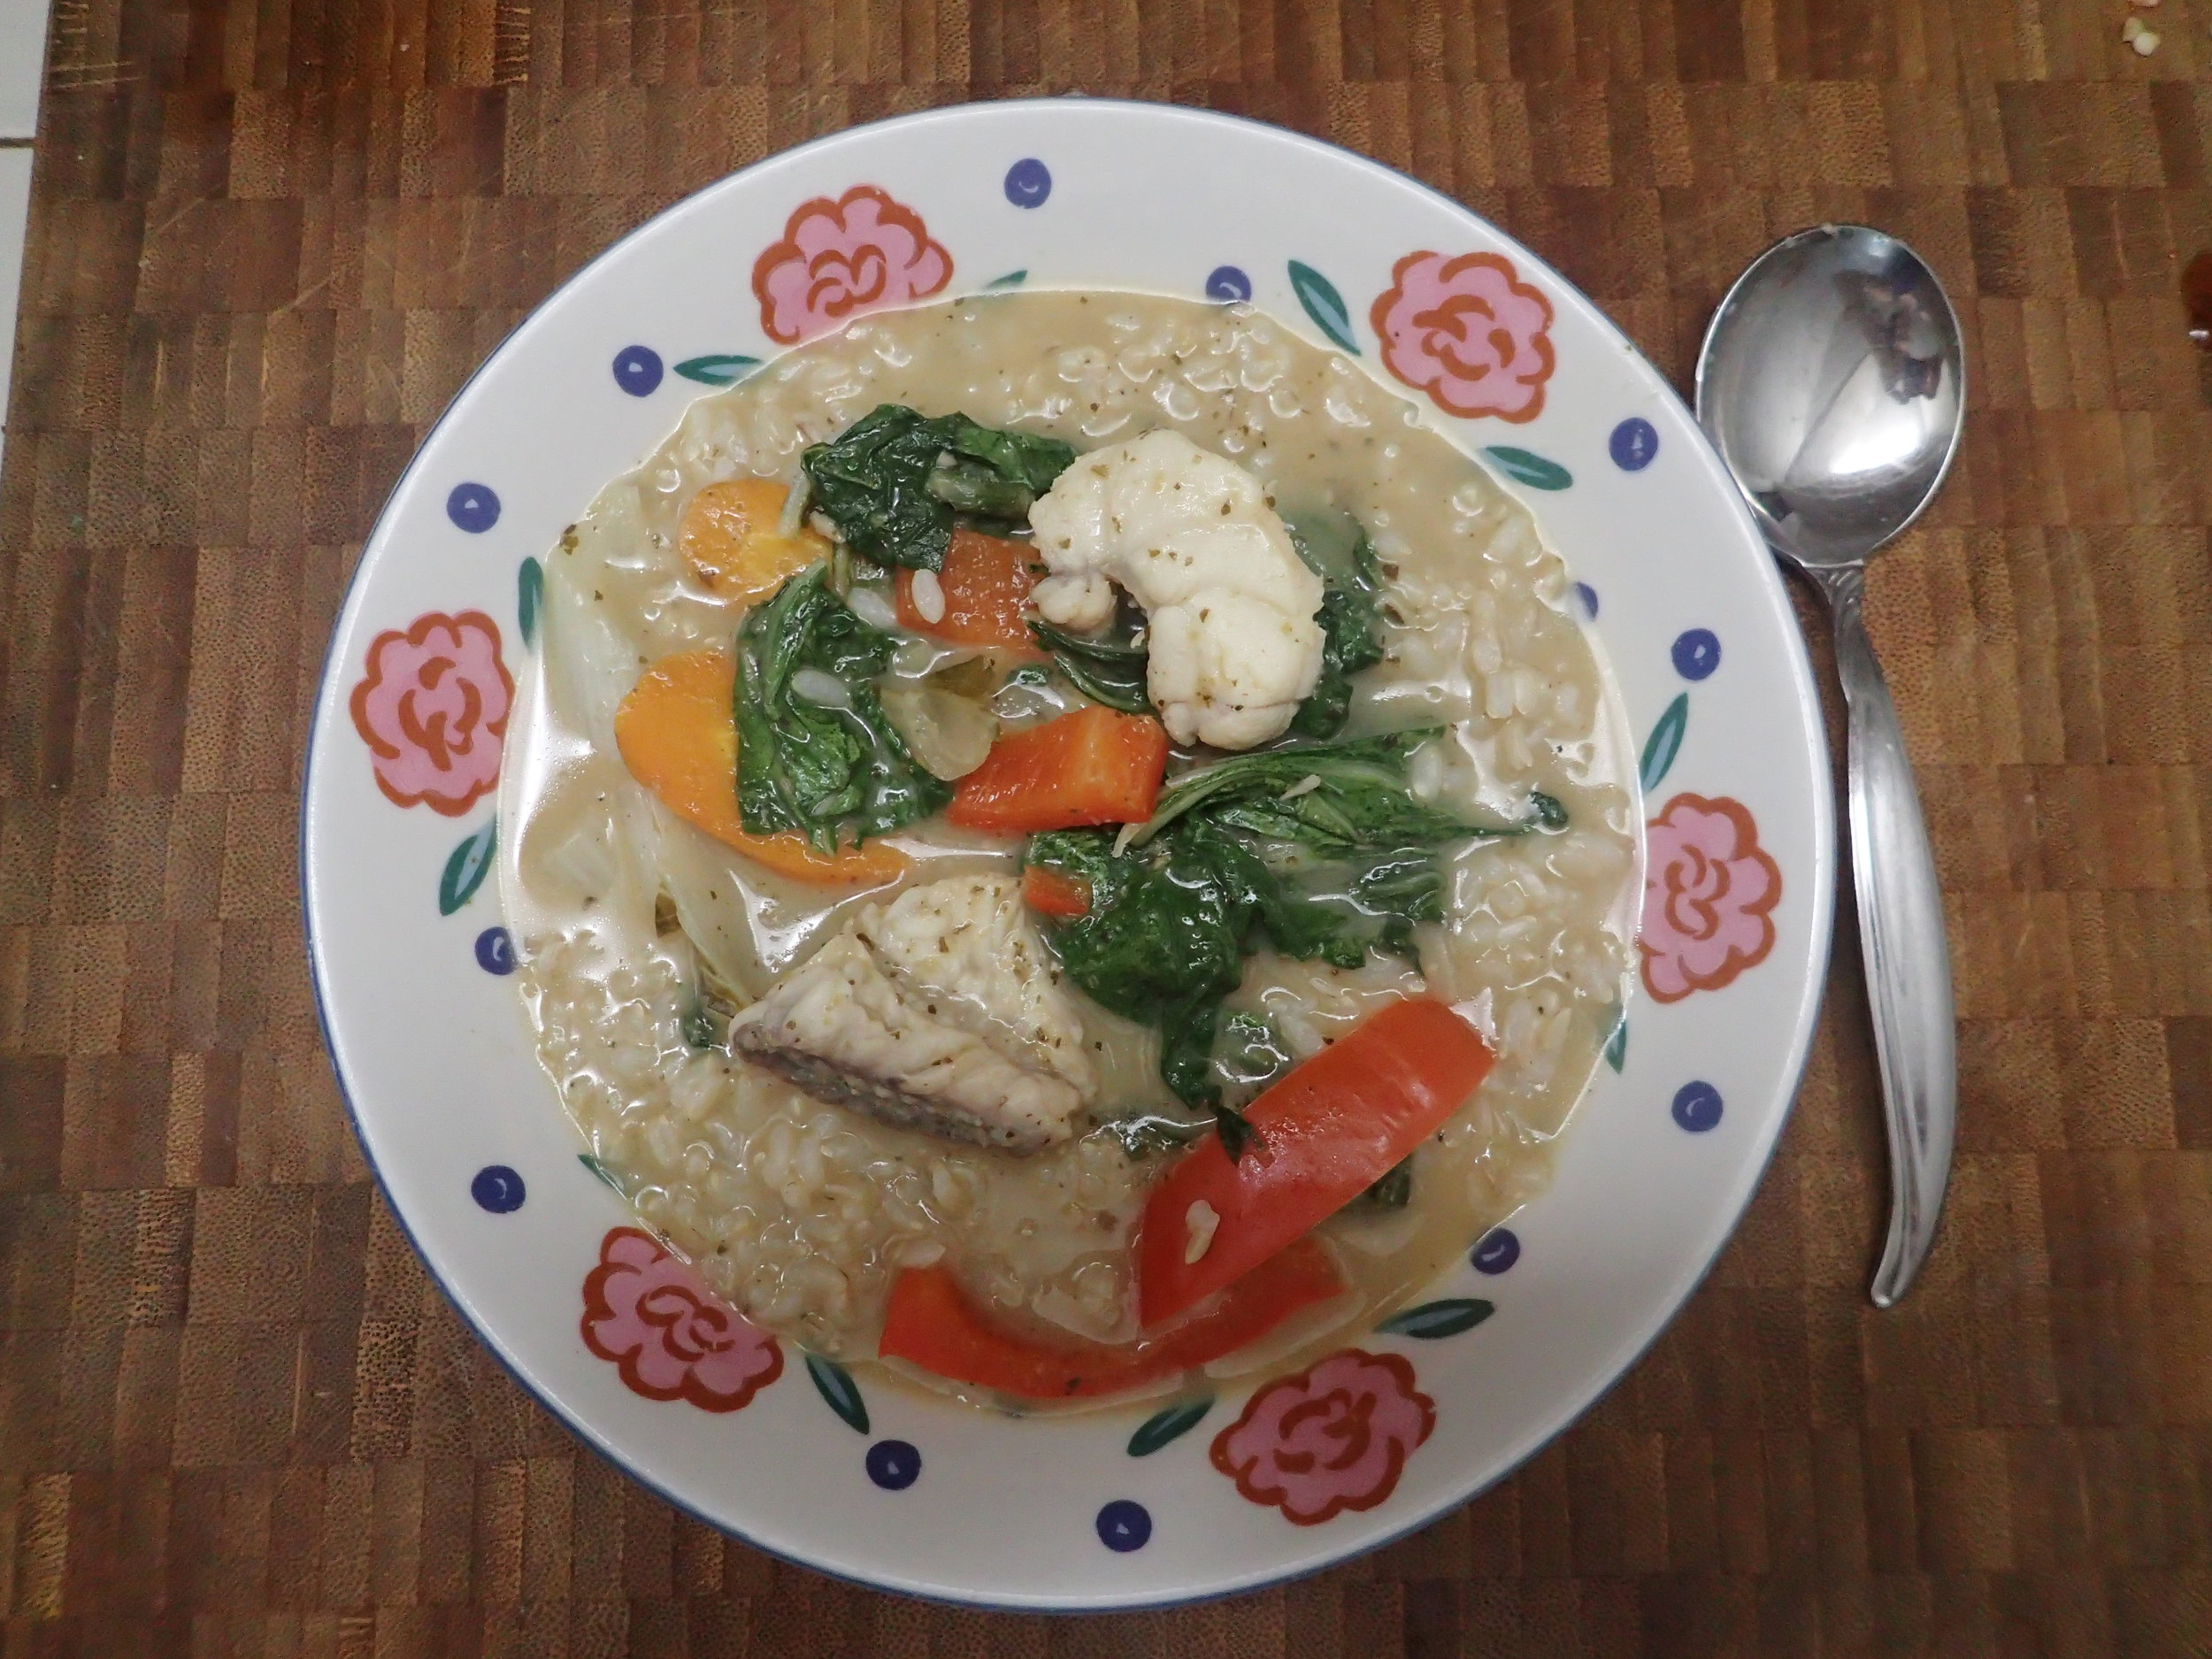 Thai green curry with a medley of vegetables and monkfish